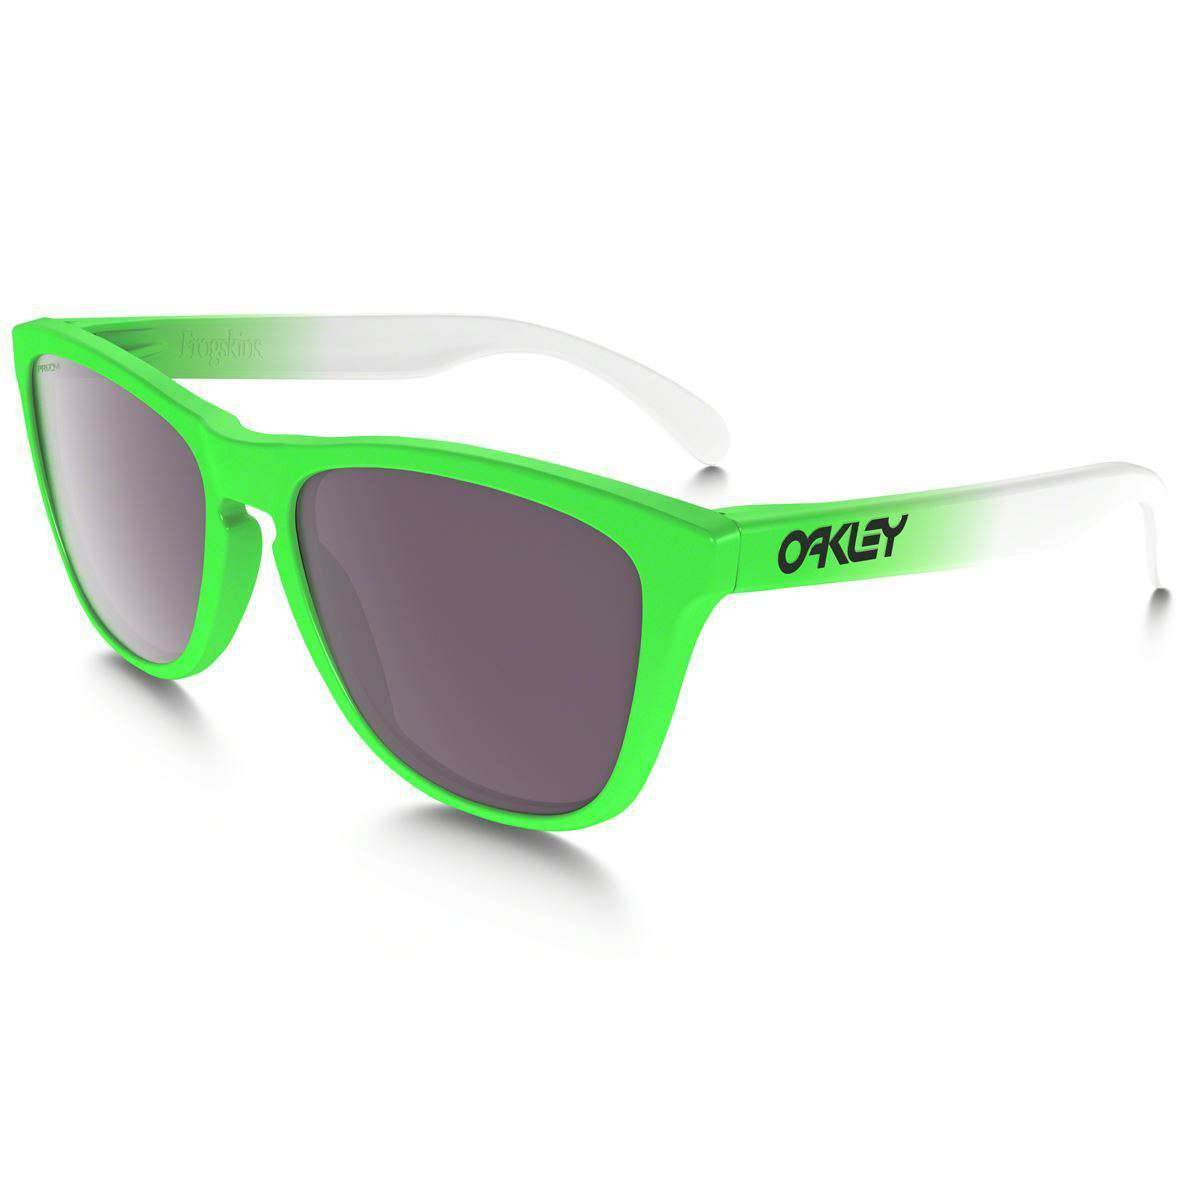 CLEARANCE - Oakley Frogskins Men's Sunglasses OPEN BOX - Green Fade w/ PRIZM Daily Polarized Lens